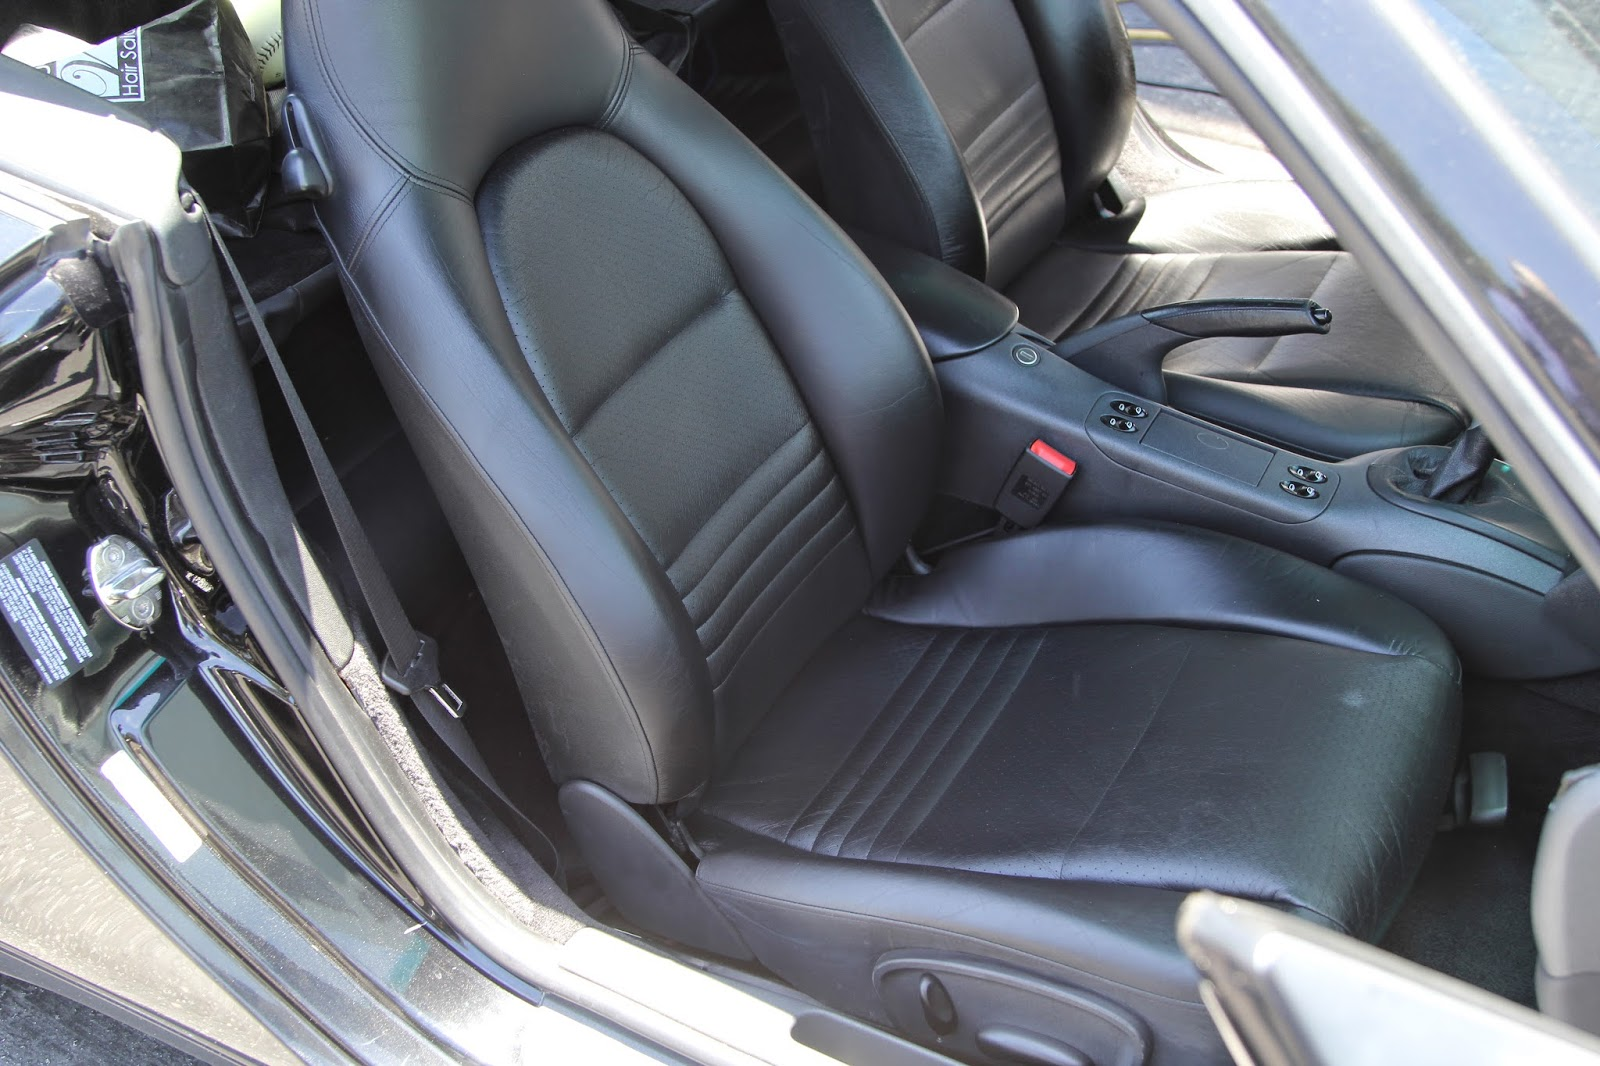 Cooks Upholstery and Classic Restoration: Auto Upholstery Seat